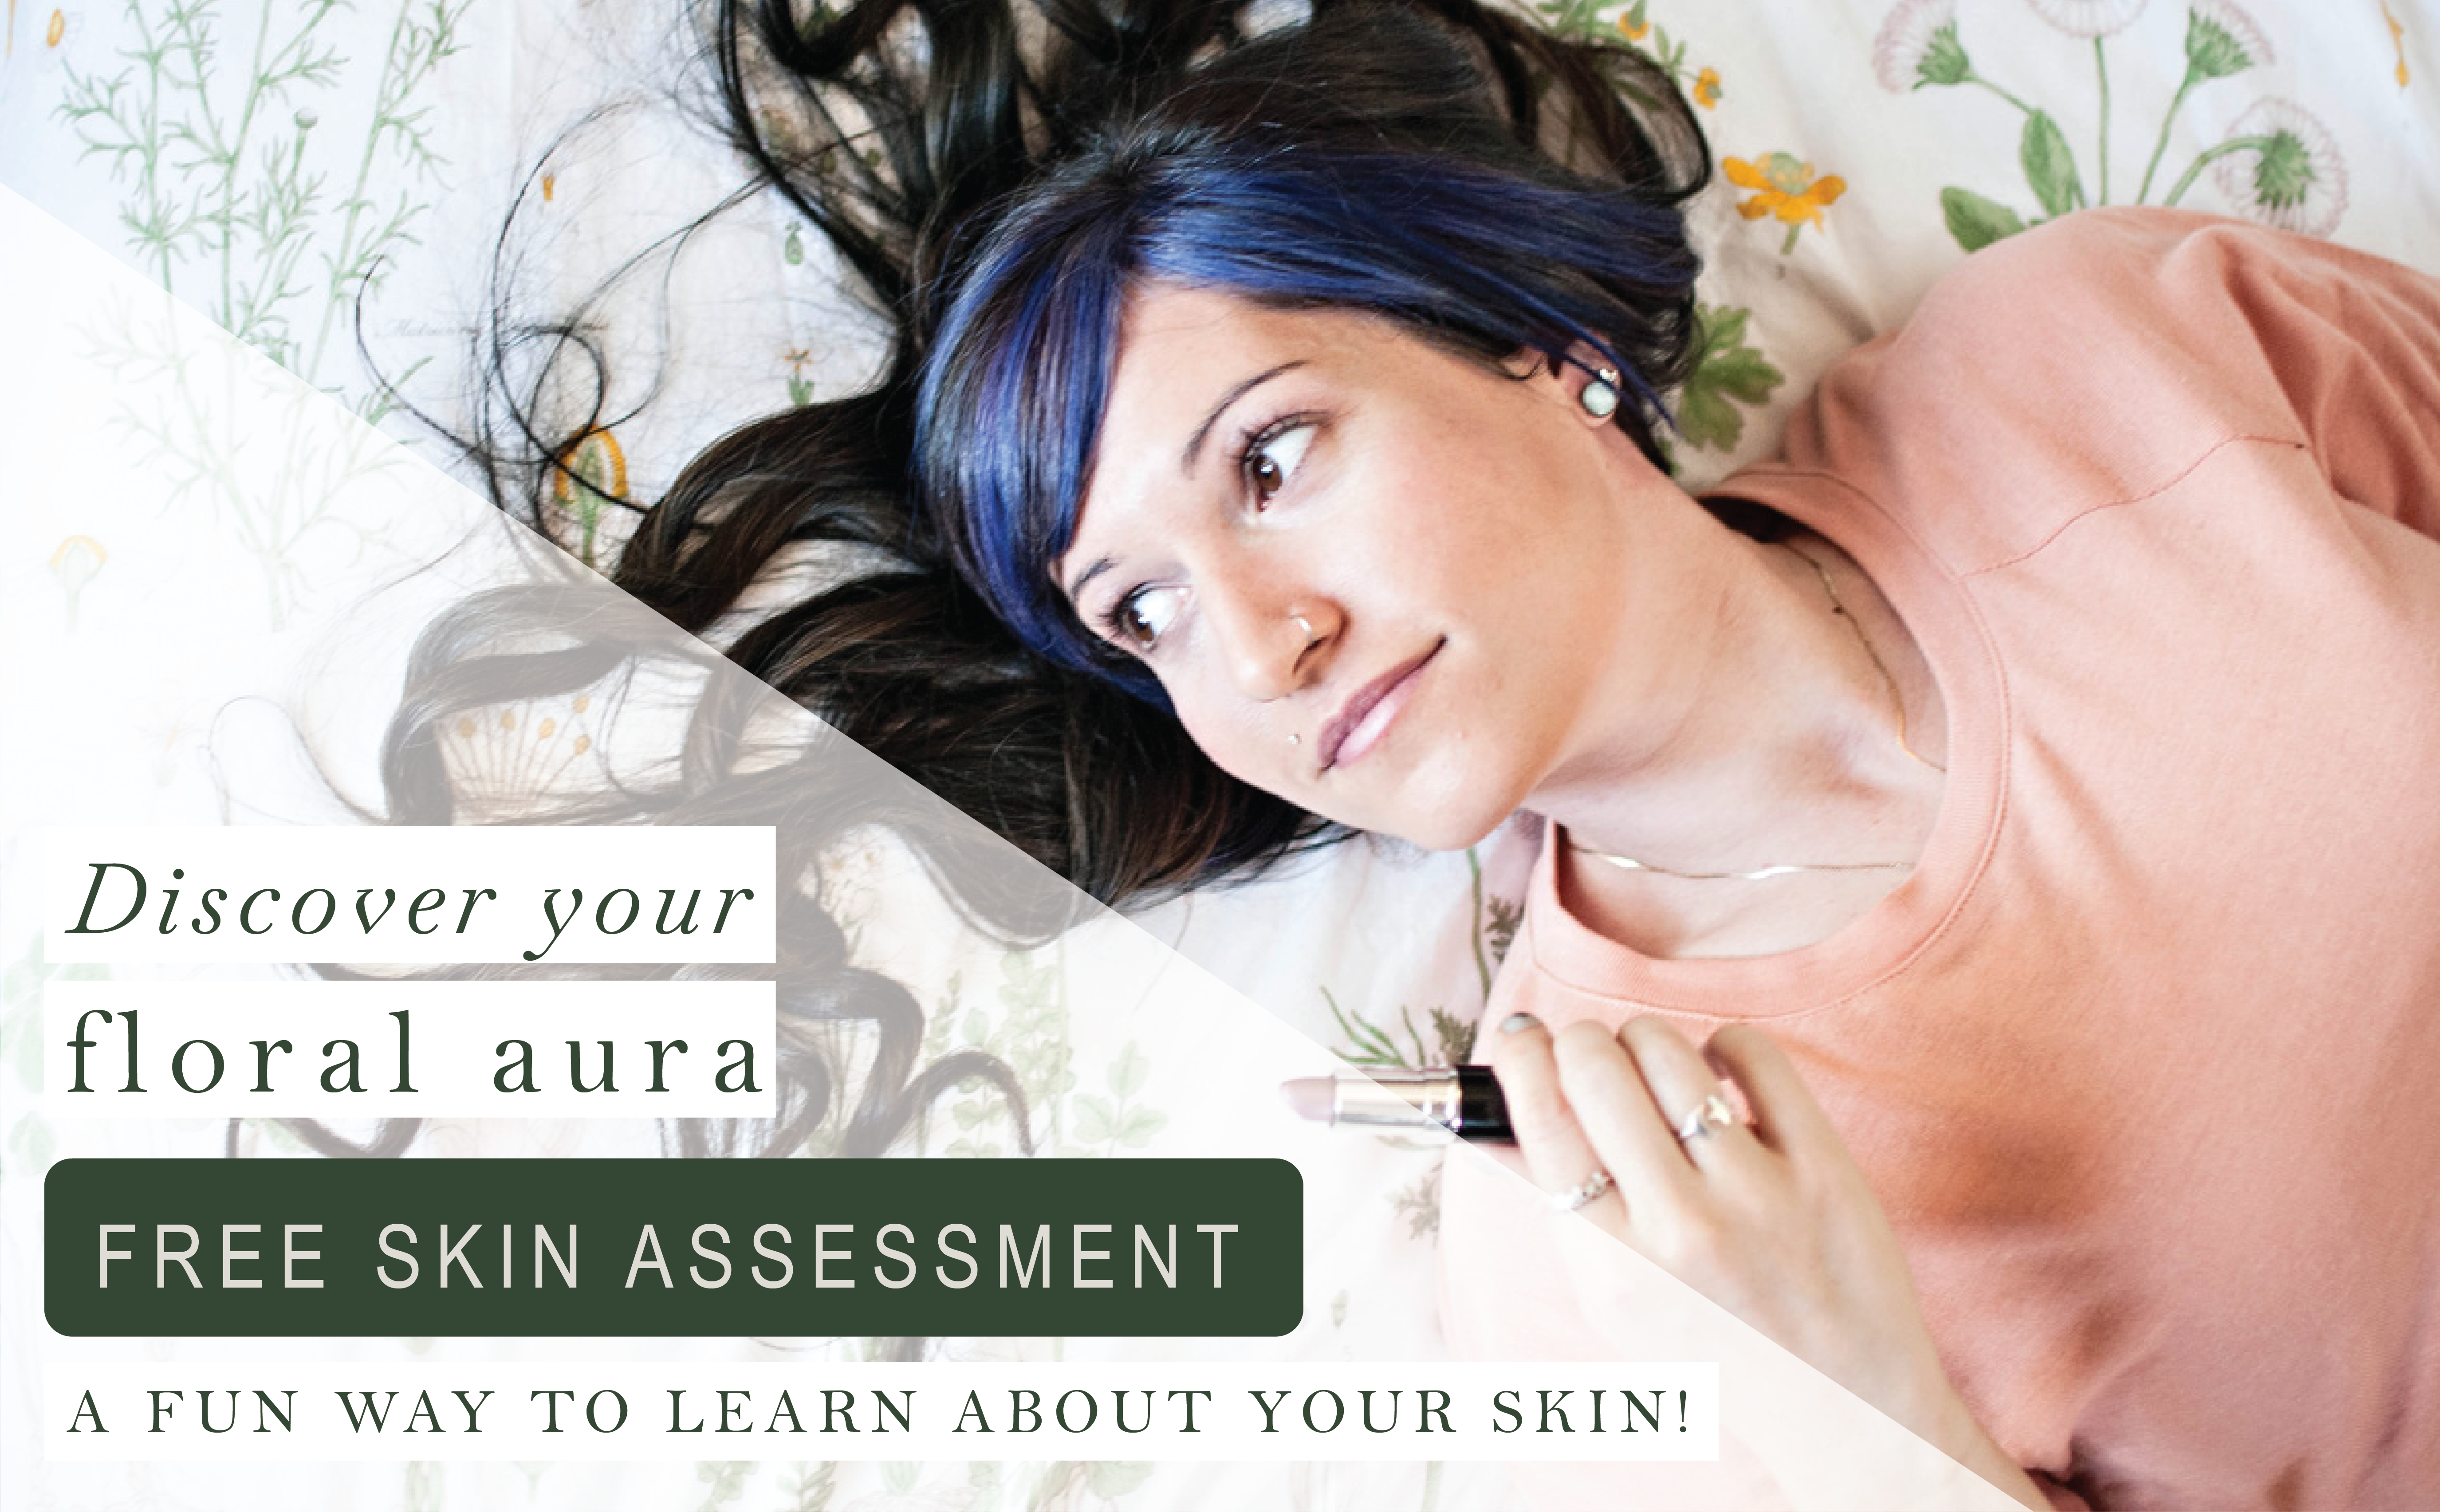 Free skin assessment - natural skincare assessment - floral aura skin quiz from grounded sage skincare